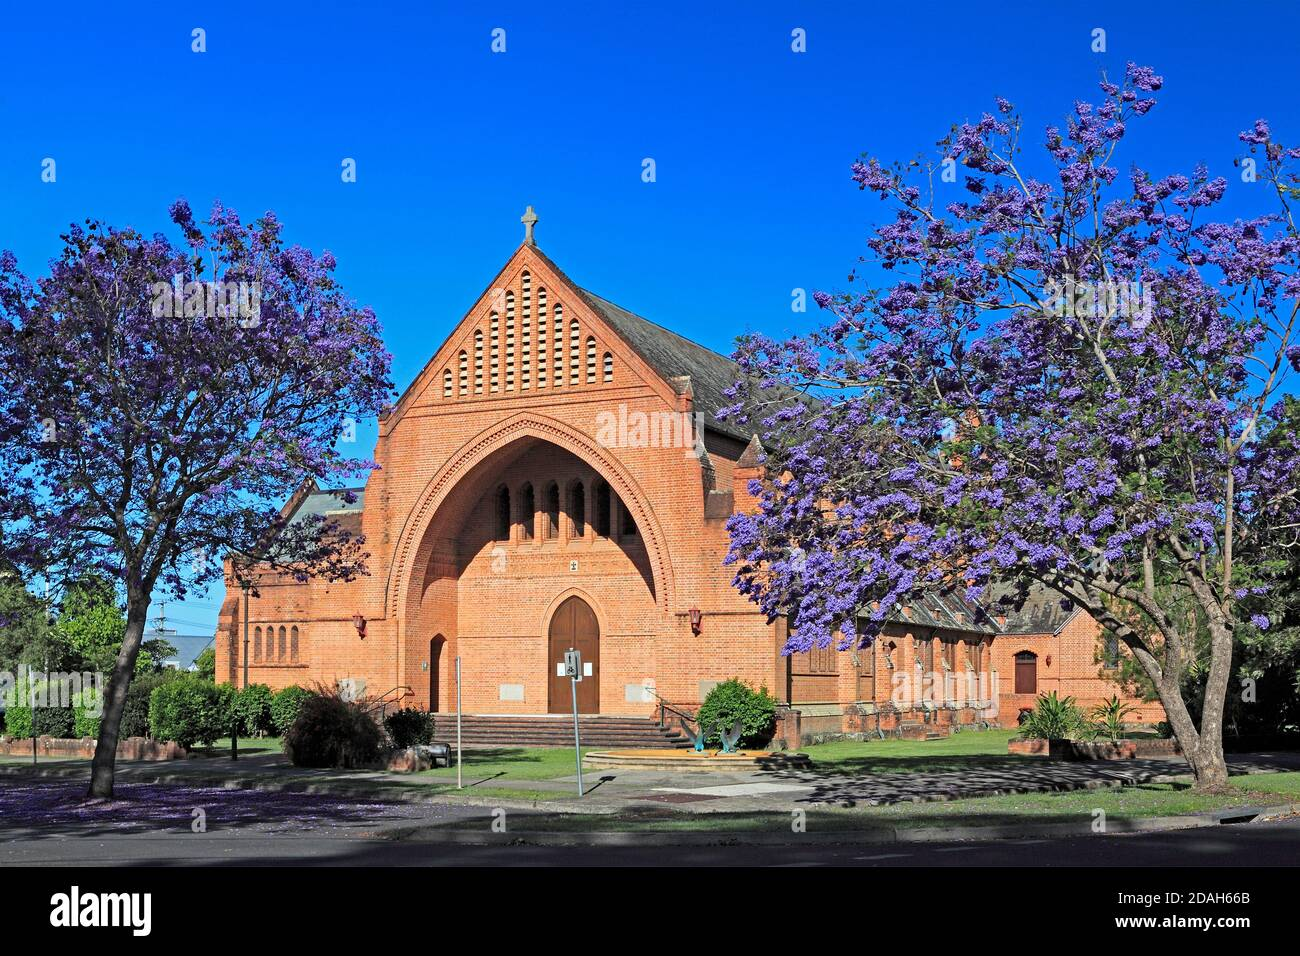 anglican-cathedral-church-of-christ-the-king-also-known-as-christ-church-cathedral-grafton-nsw-australia-two-flowering-jacaranda-trees-are-in-front-2DAH66B.jpg